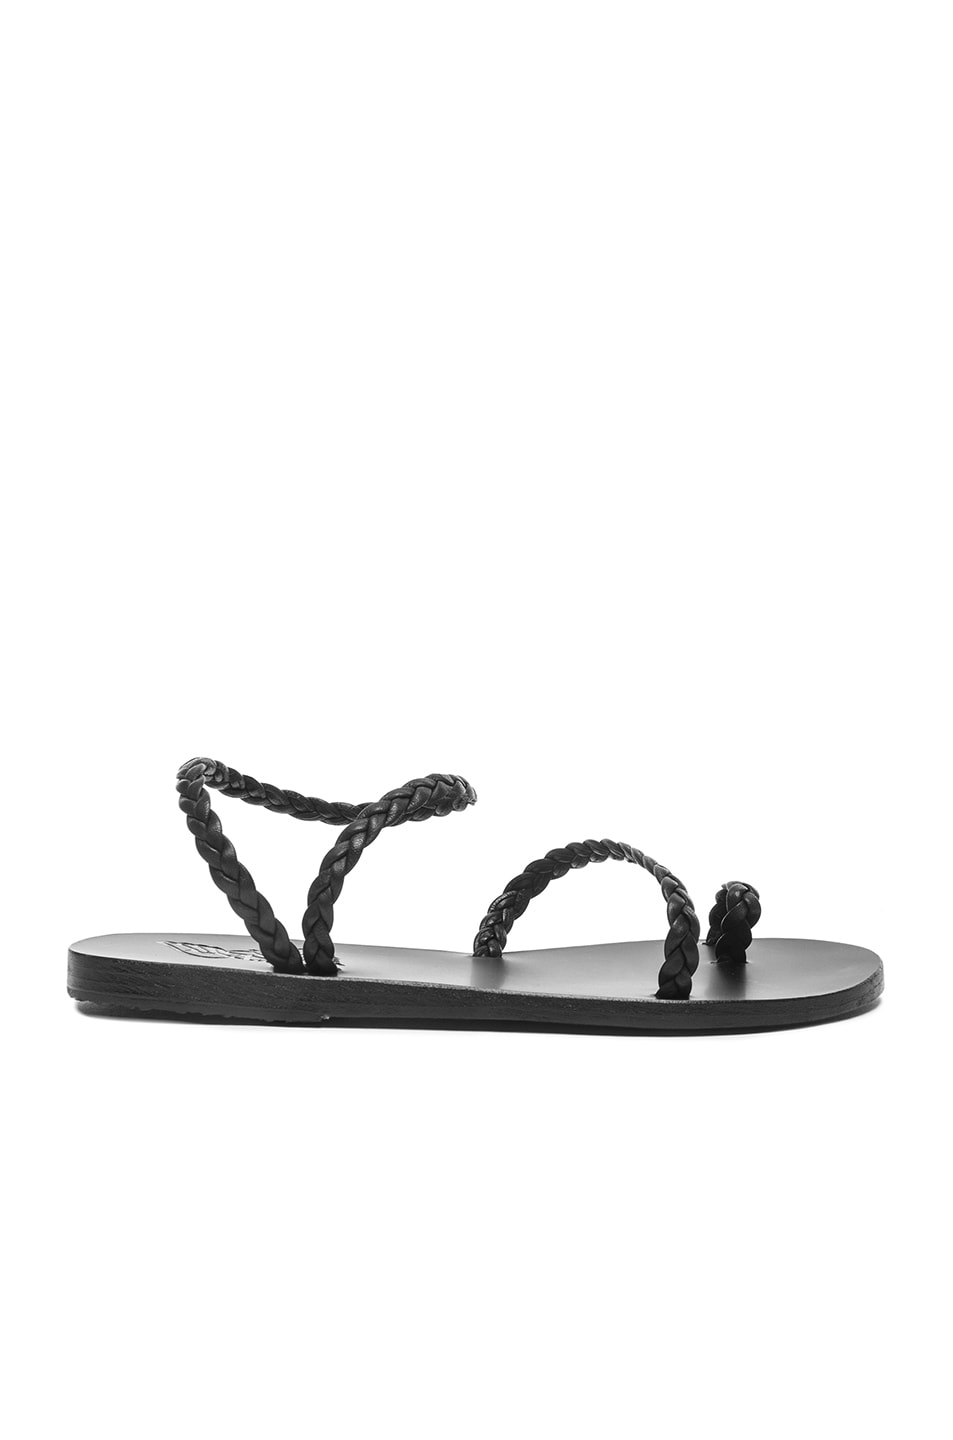 ANCIENT GREEK SANDALS Eleftheria Leather Sandals in Black